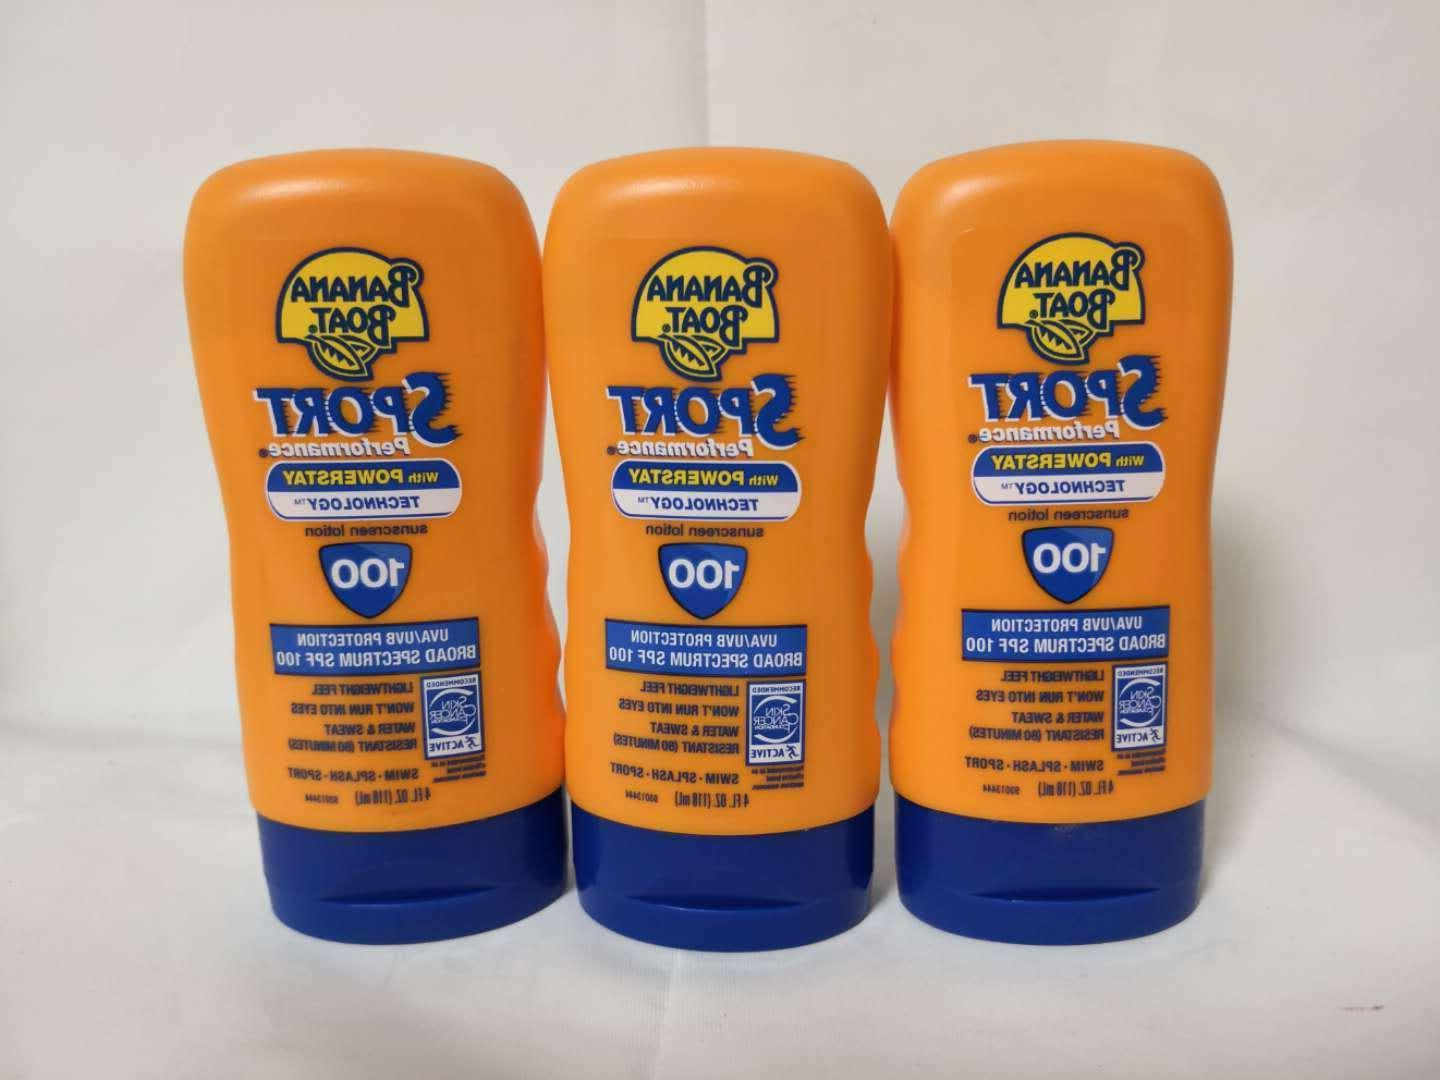 3x sport performance lotion spf 100 4oz